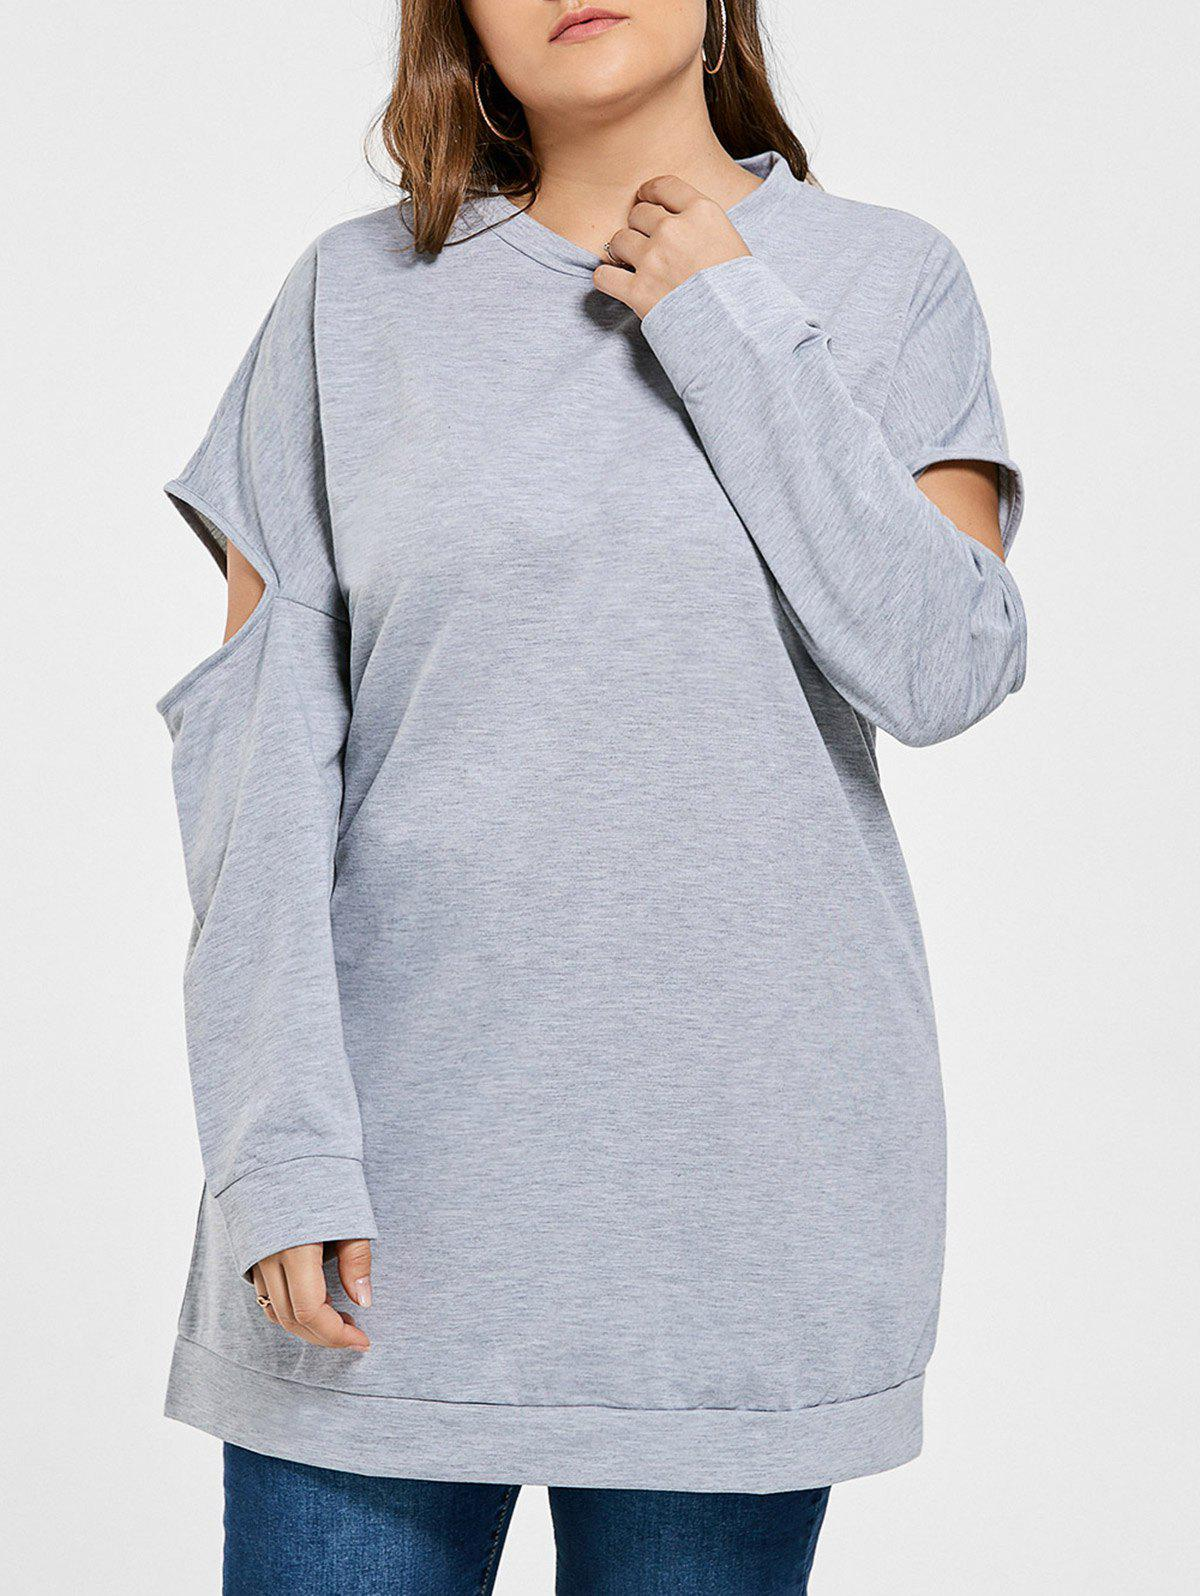 Fashion Plus Size Crew Neck Cut Out Tunic Sweatshirt